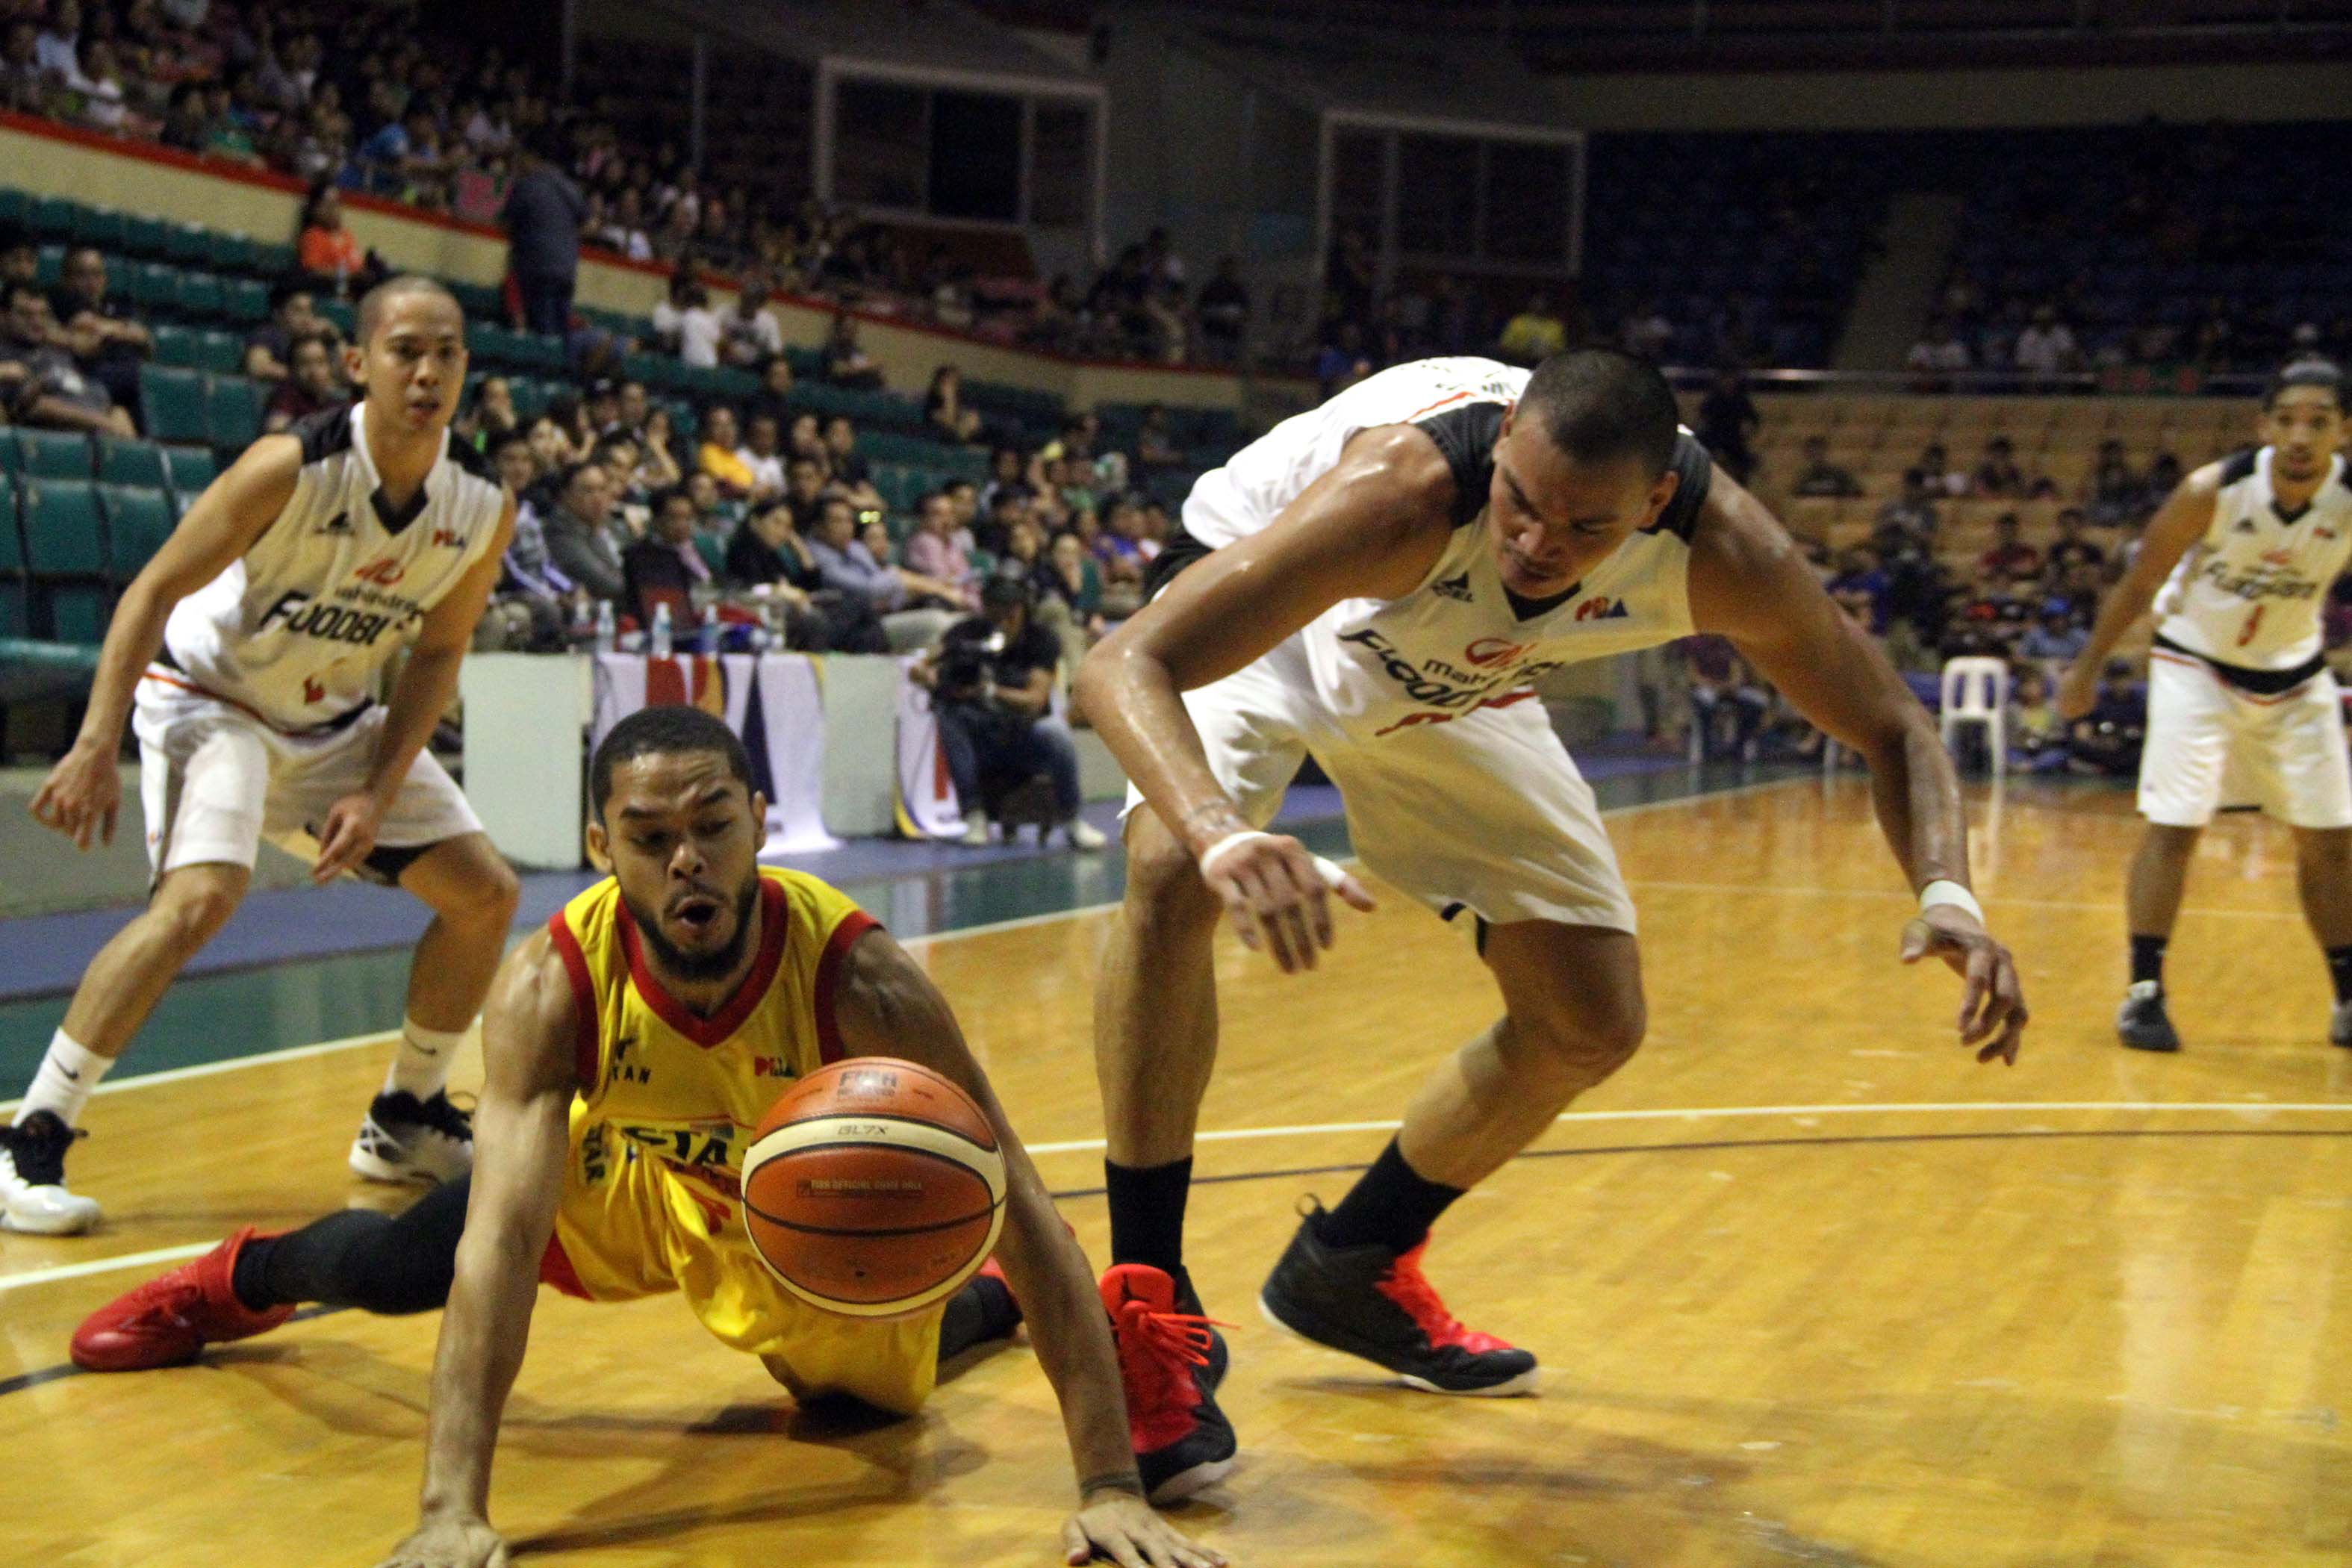 Star (Pictured) made one final push to the second seed in the PBA Philippine Cup quarterfinals with a 124-87 rout of Mahindra in the final night of the eliminations at the Cuneta Astrodome on Wednesday. (Photo: Philippine News Agency)